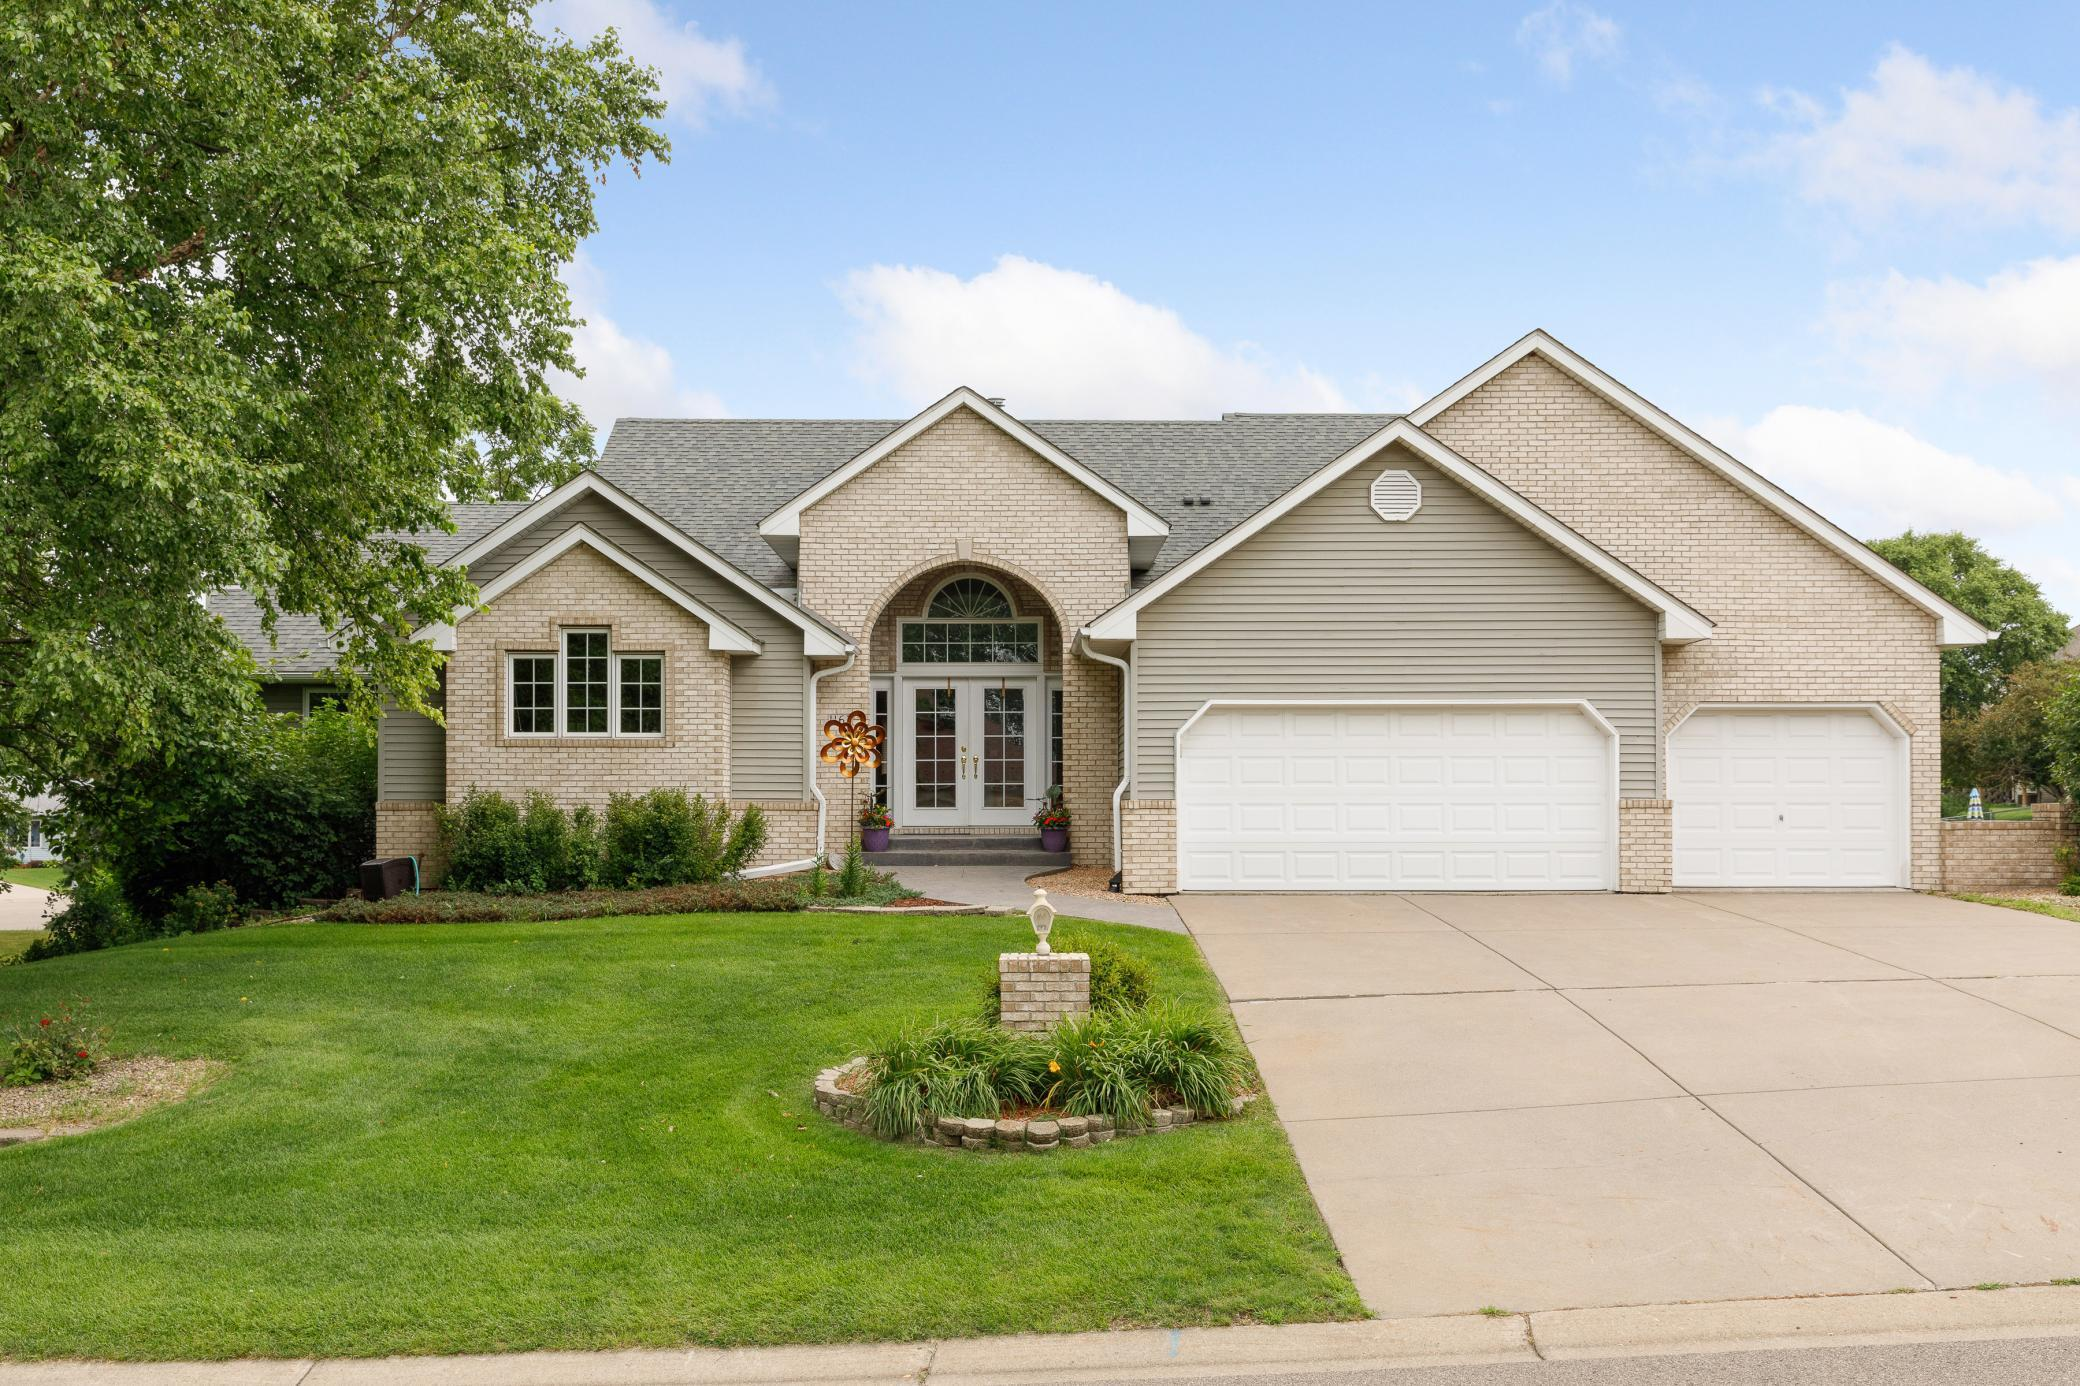 1162 Lakewood Drive S Property Photo - Maplewood, MN real estate listing